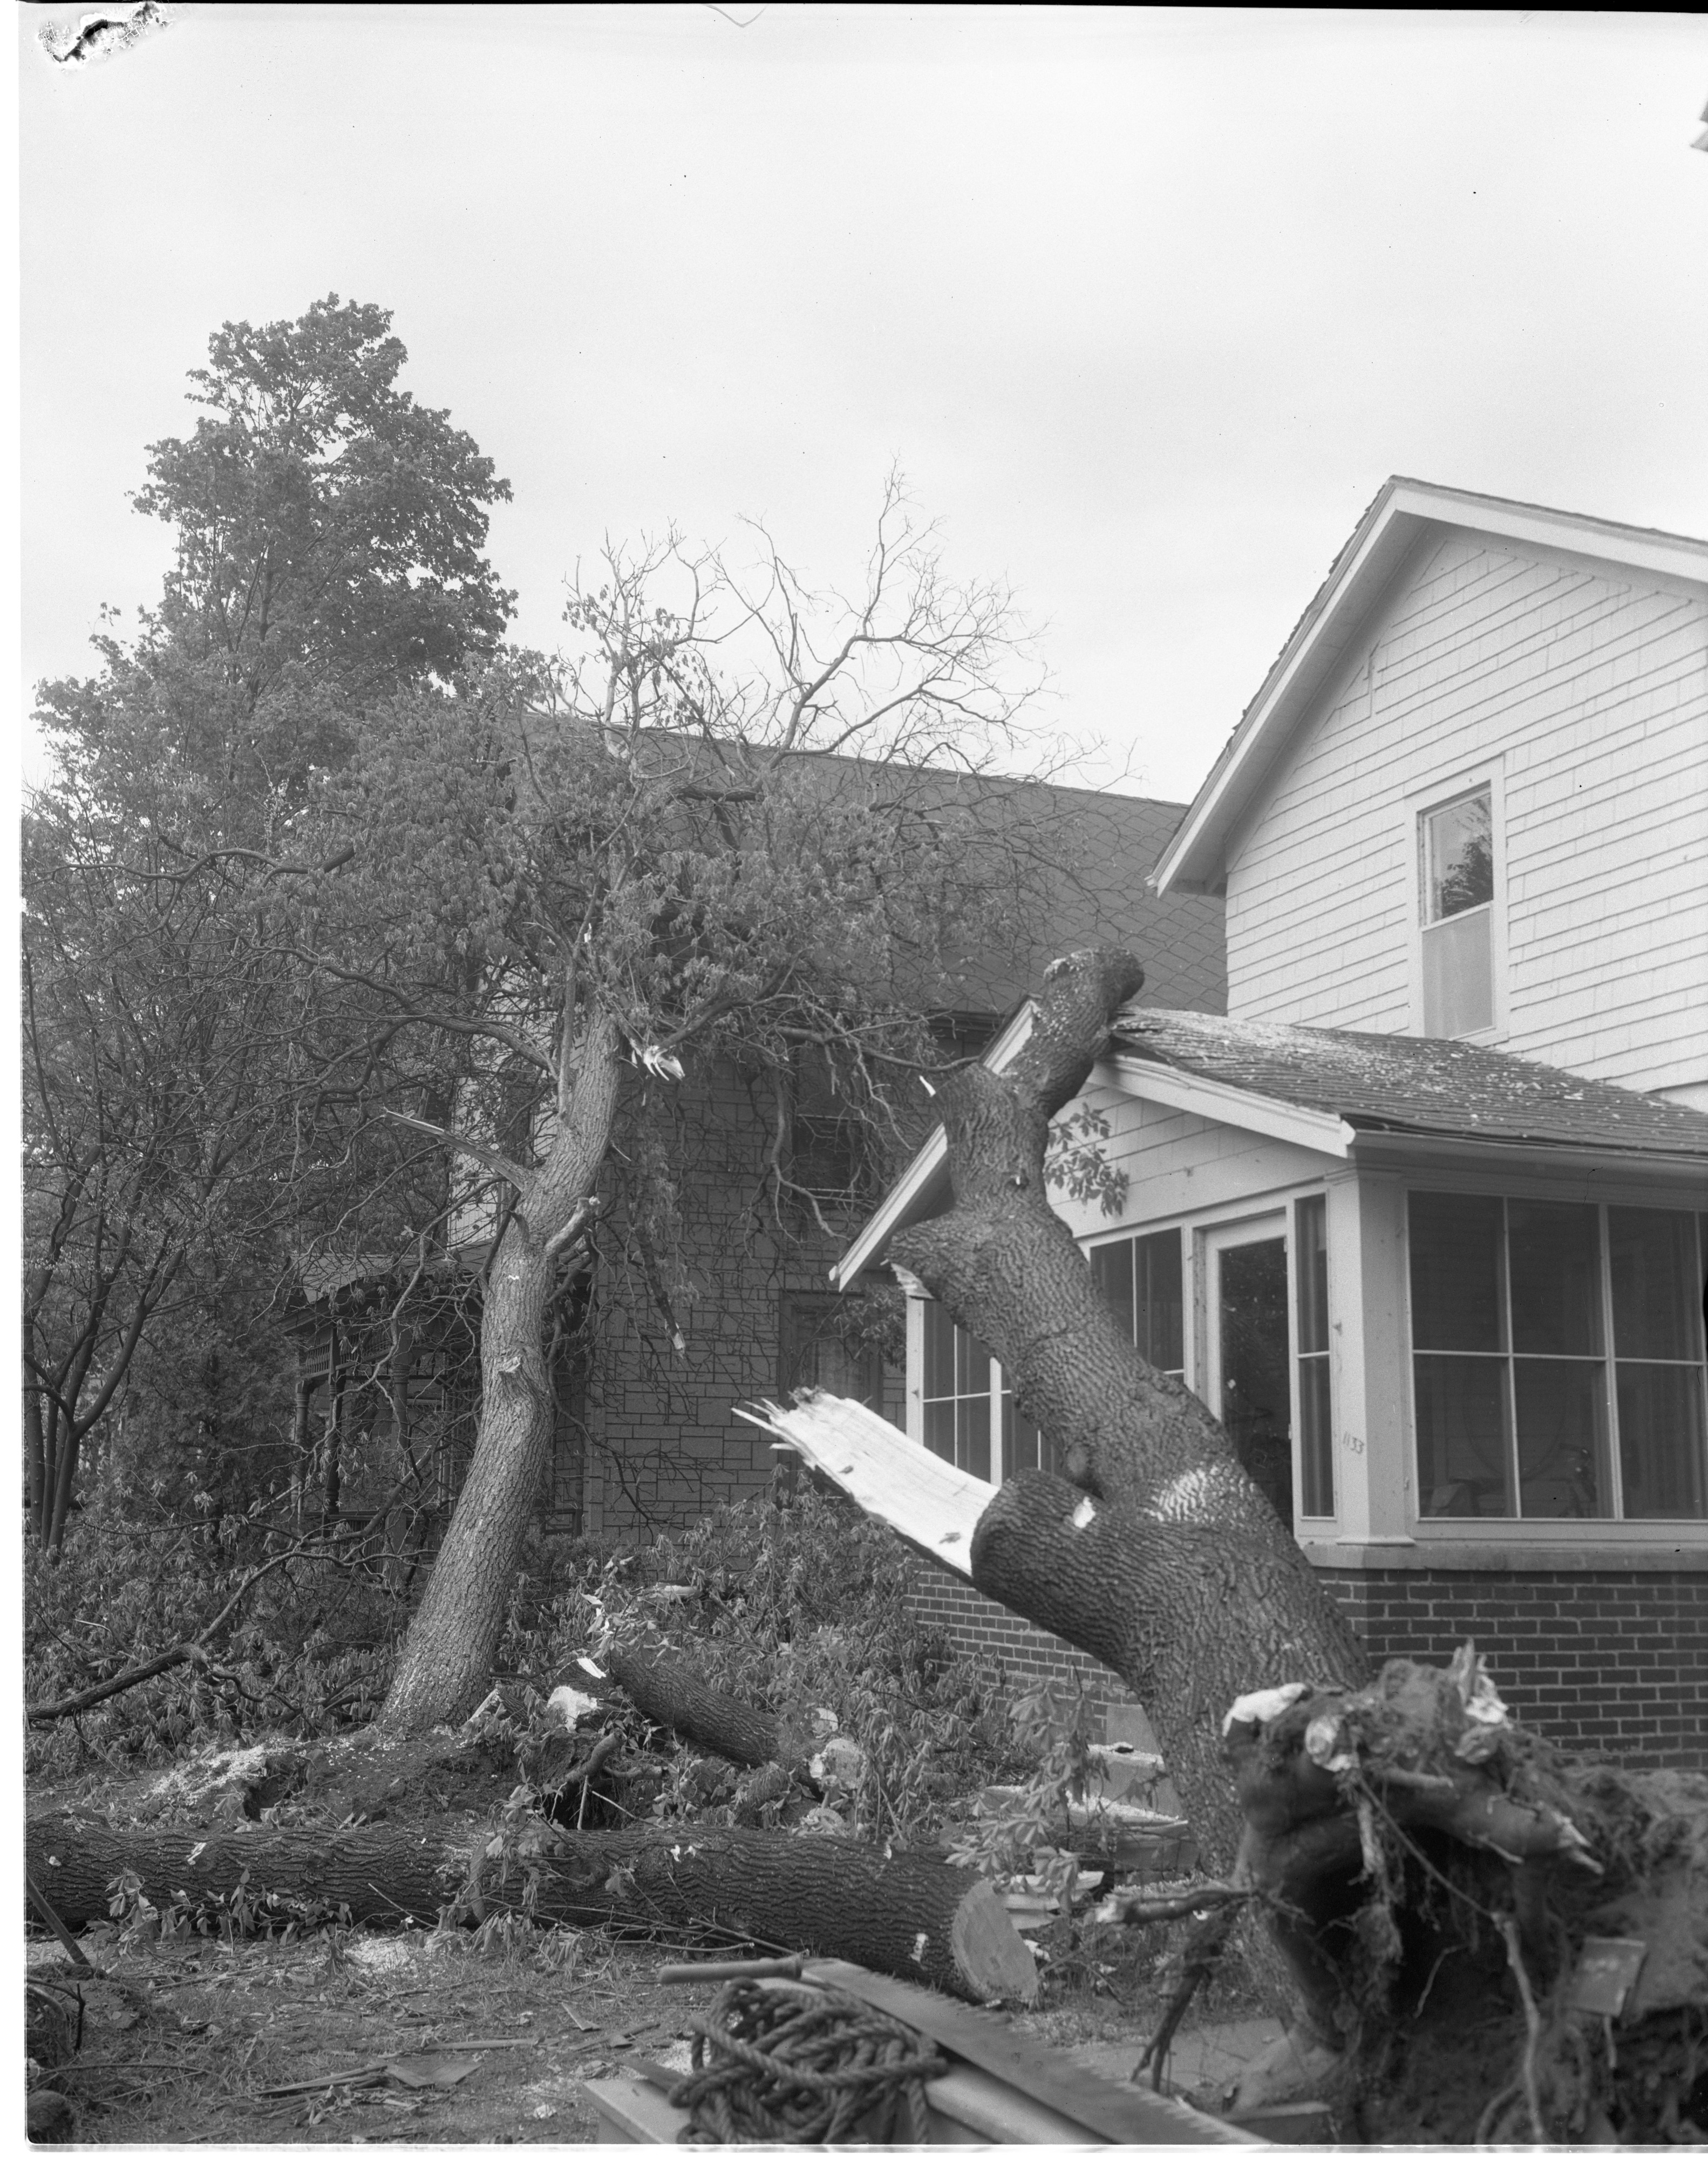 Remains Of Trees Destroyed By The Windstorm, May 1959 image